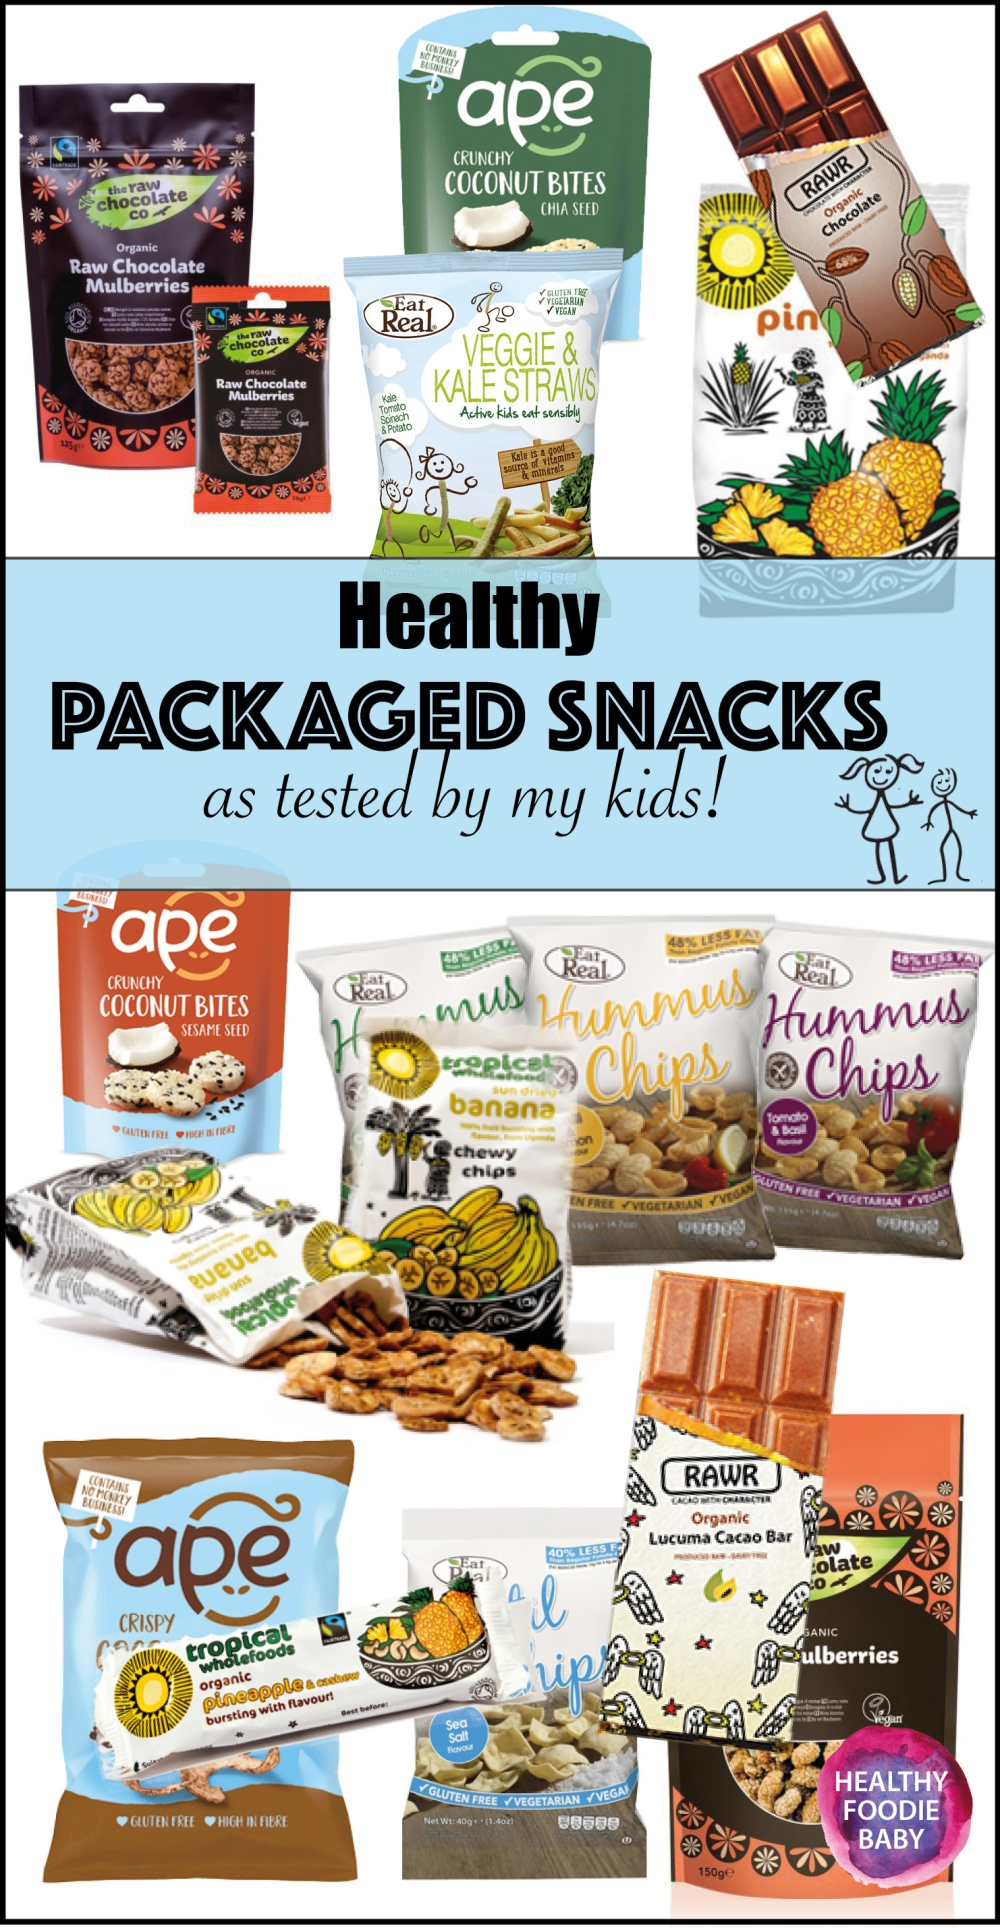 heathier-packaged-snacks-copy